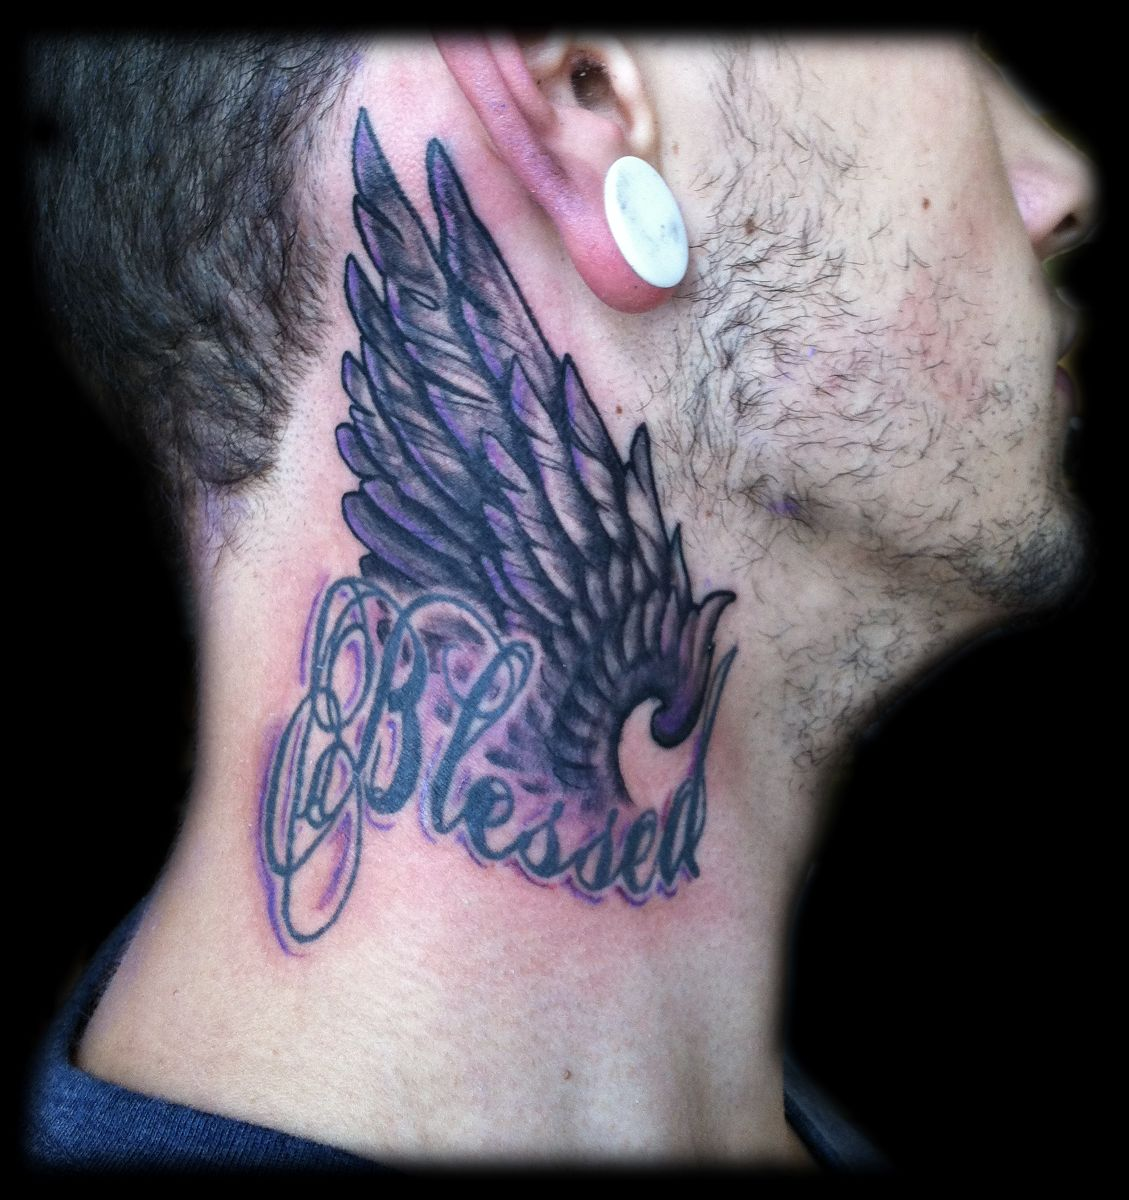 Angel-Tattoo-on-Neck.